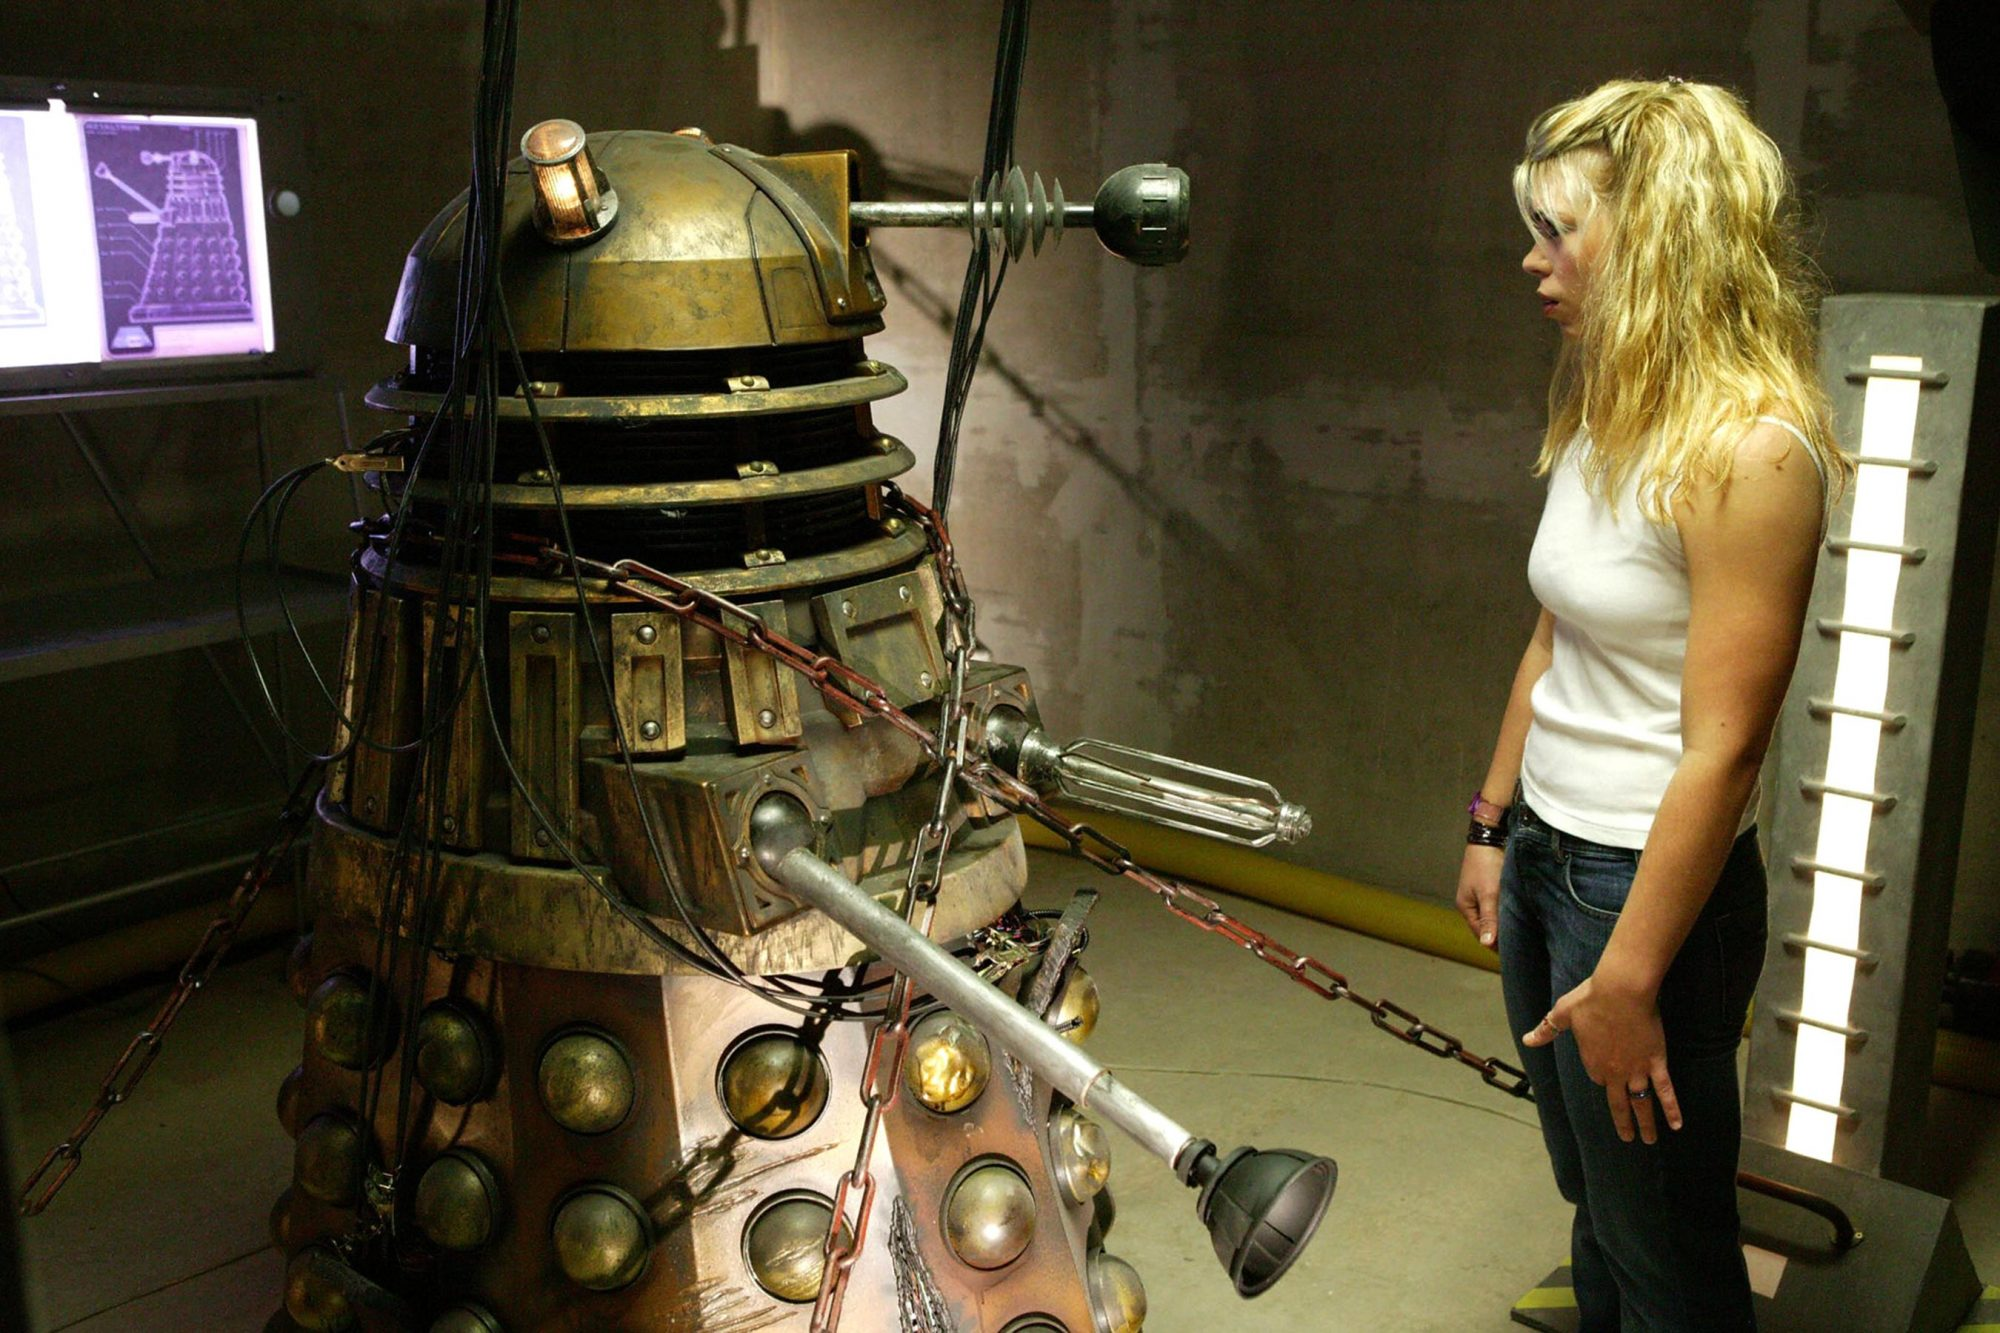 DOCTOR WHO, Billie Piper, Dalek, (Season 1, episode   6, aired April 30, 2005),  2005-, photo:  ©BBC